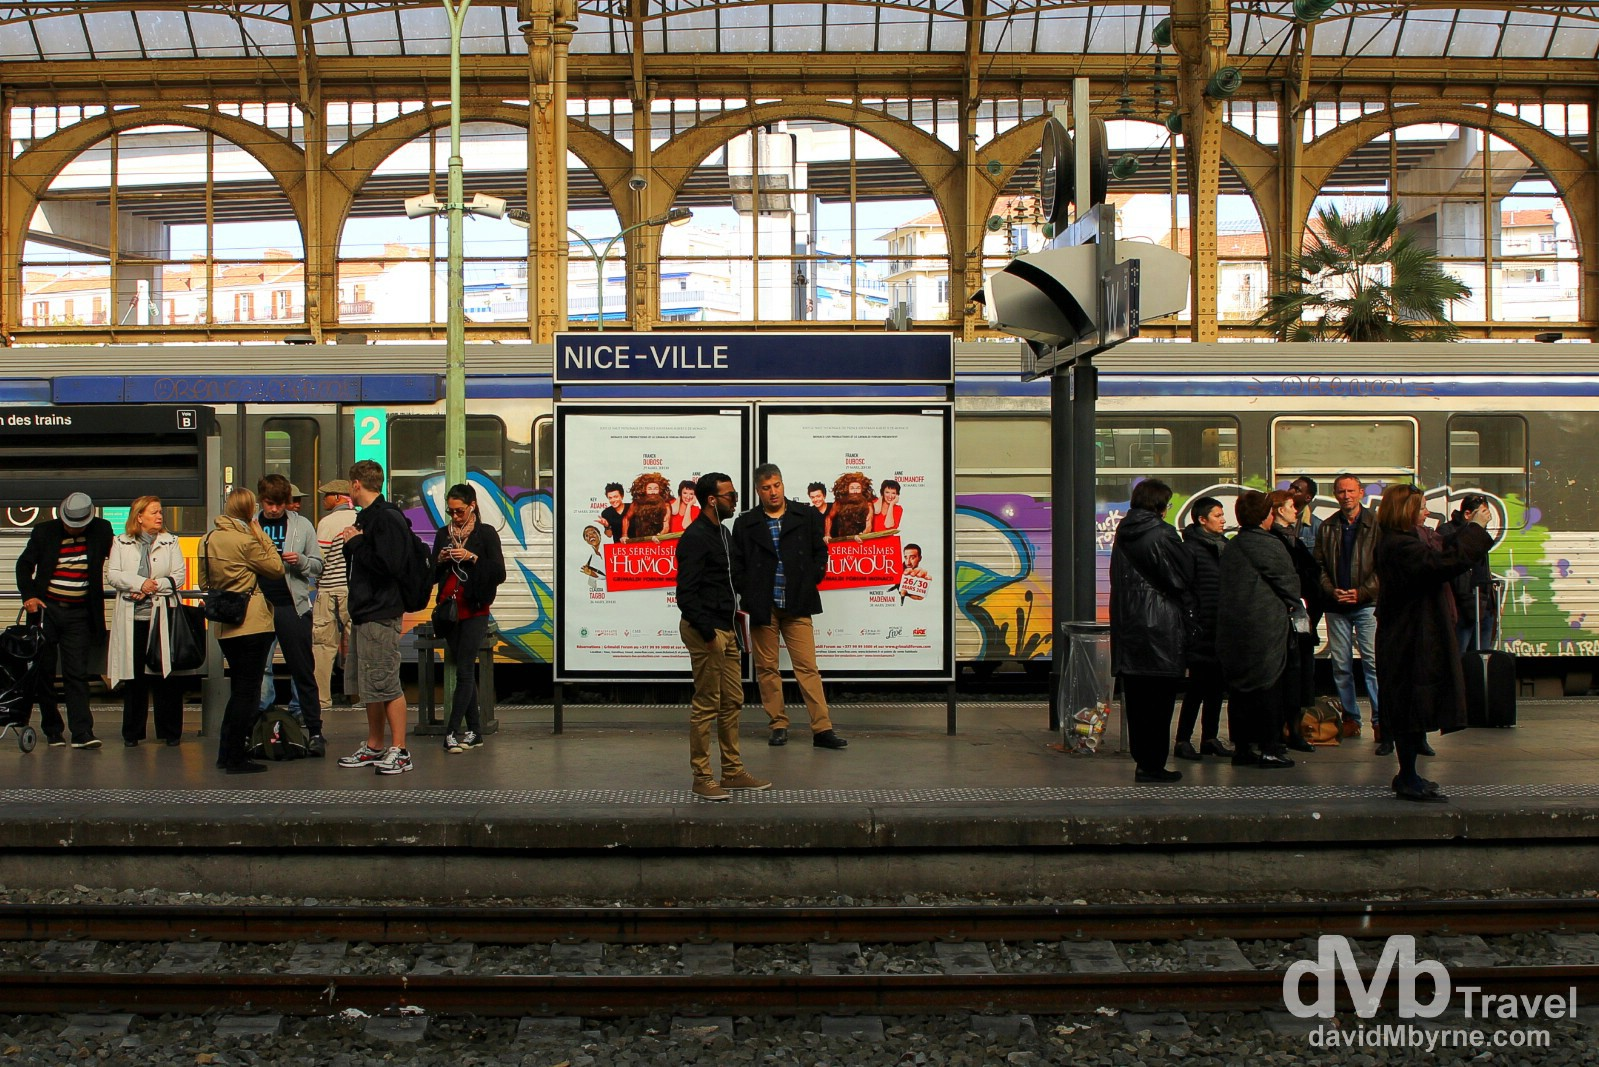 On the platform of Nice Ville train station, Nice, Côte d'Azur, France. March 14, 2014.